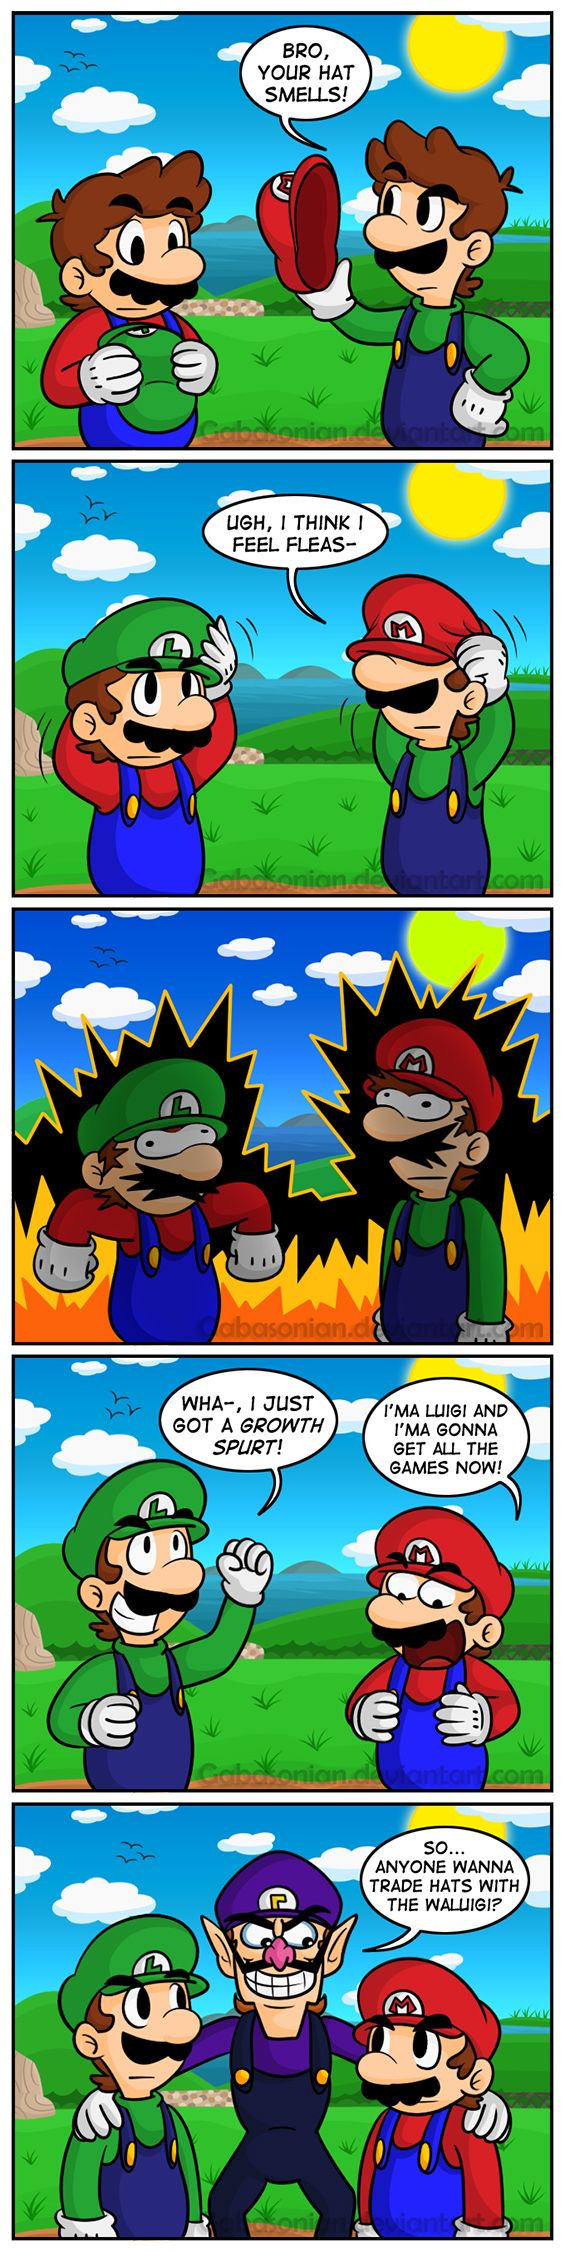 Super Mario 64 DS! Poor Waluigi